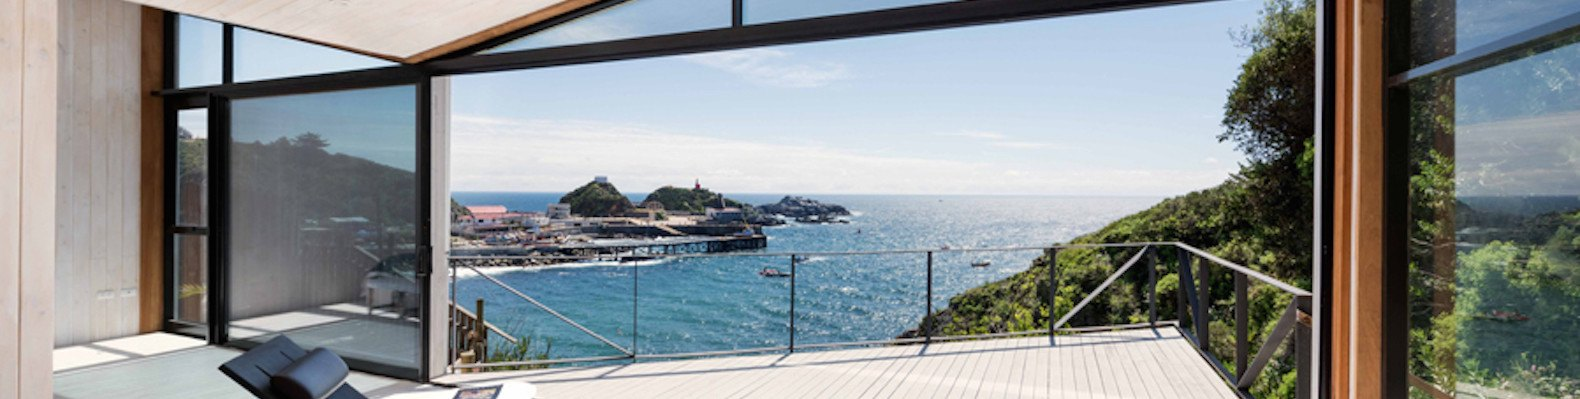 Gorgeous minimalist home in chile overlooks jaw dropping views of the pacific ocean inhabitat green design innovation architecture green building